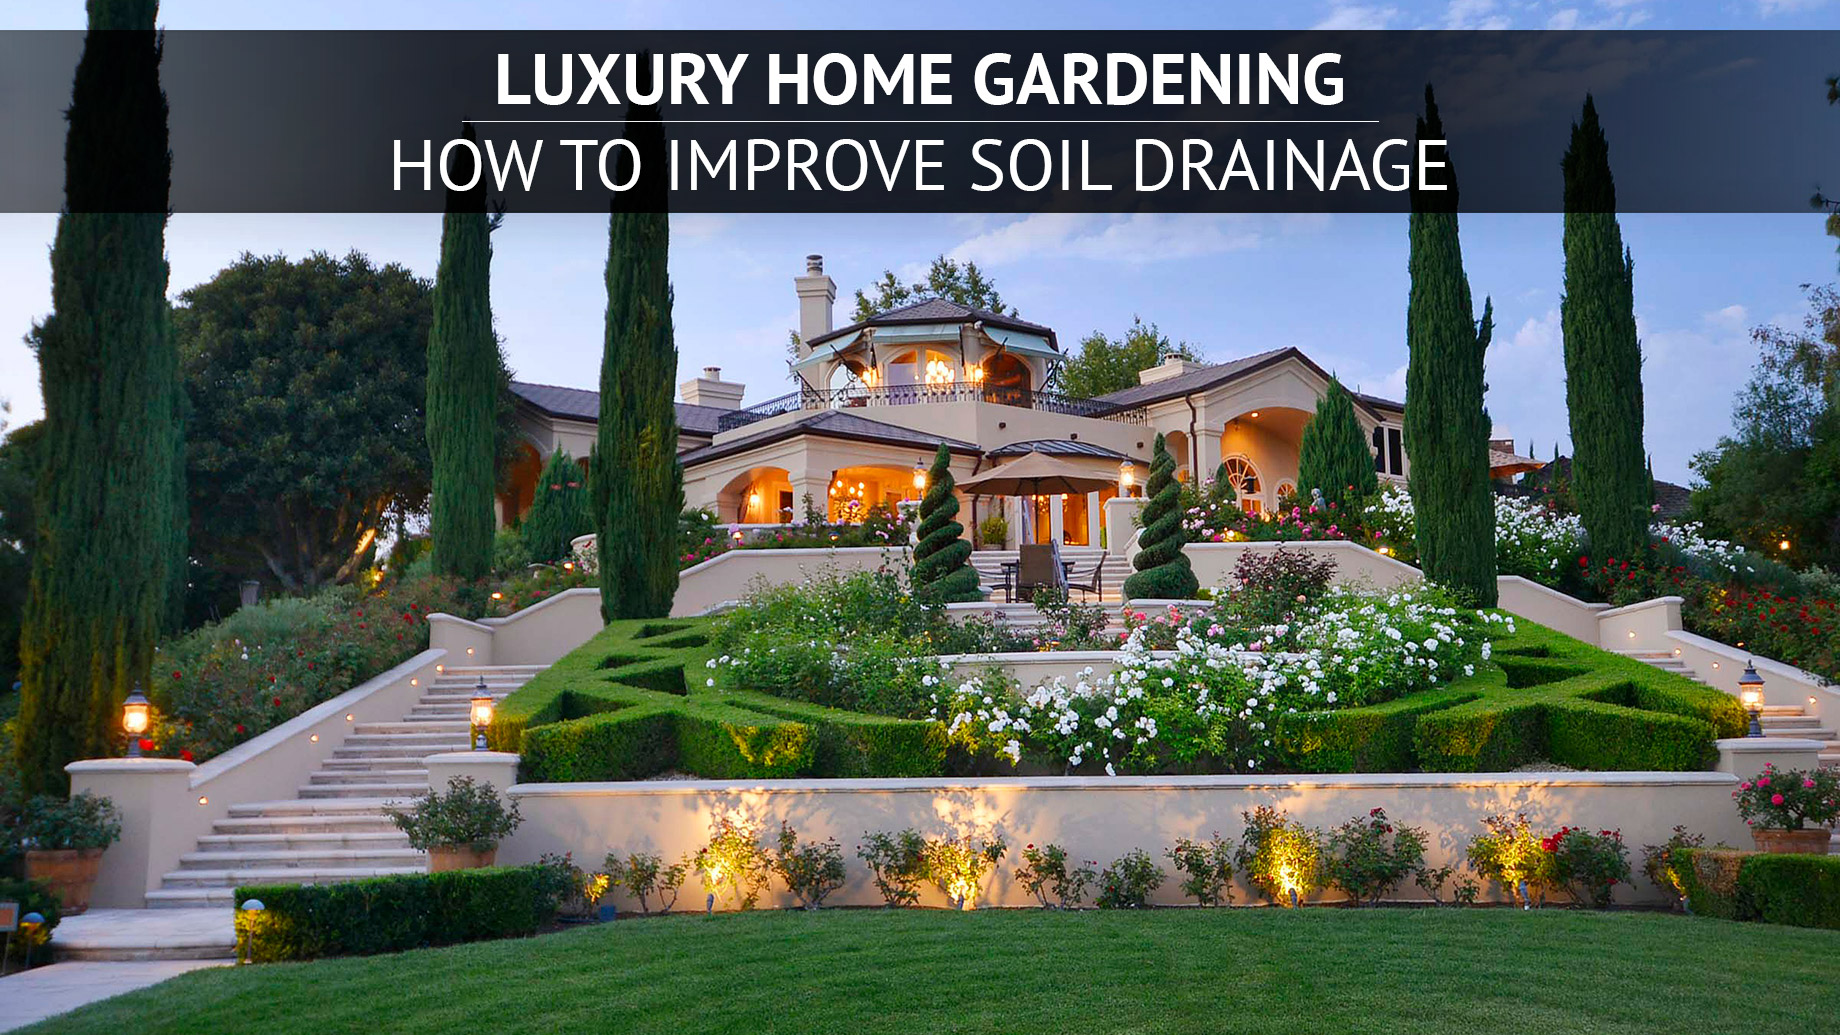 Luxury Home Gardening - How to Improve Soil Drainage